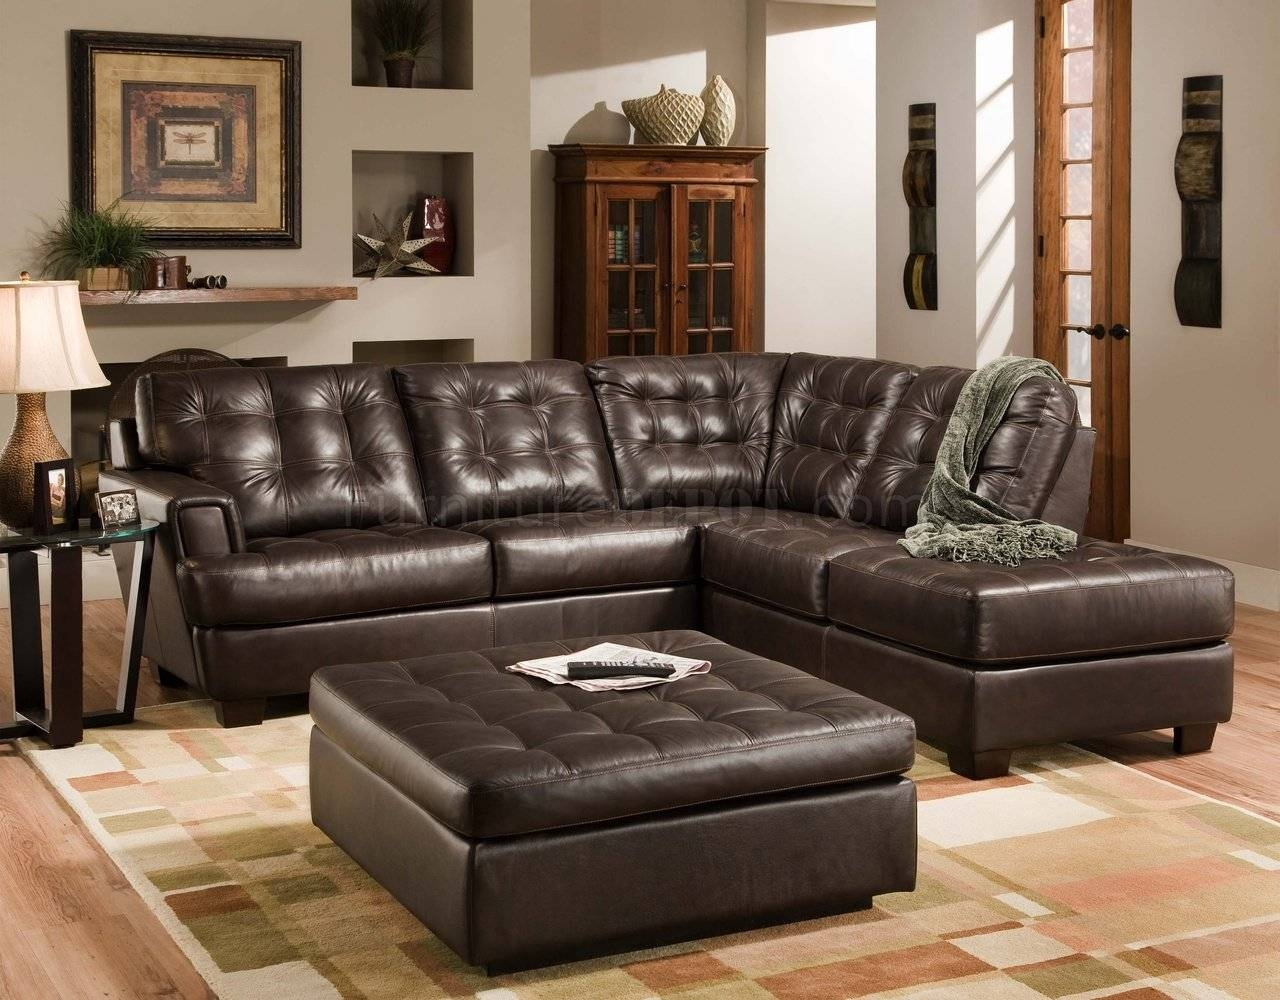 Furniture: Best Design Of Brown Leather Sectional For Modern regarding Leather Modular Sectional Sofas (Image 7 of 30)